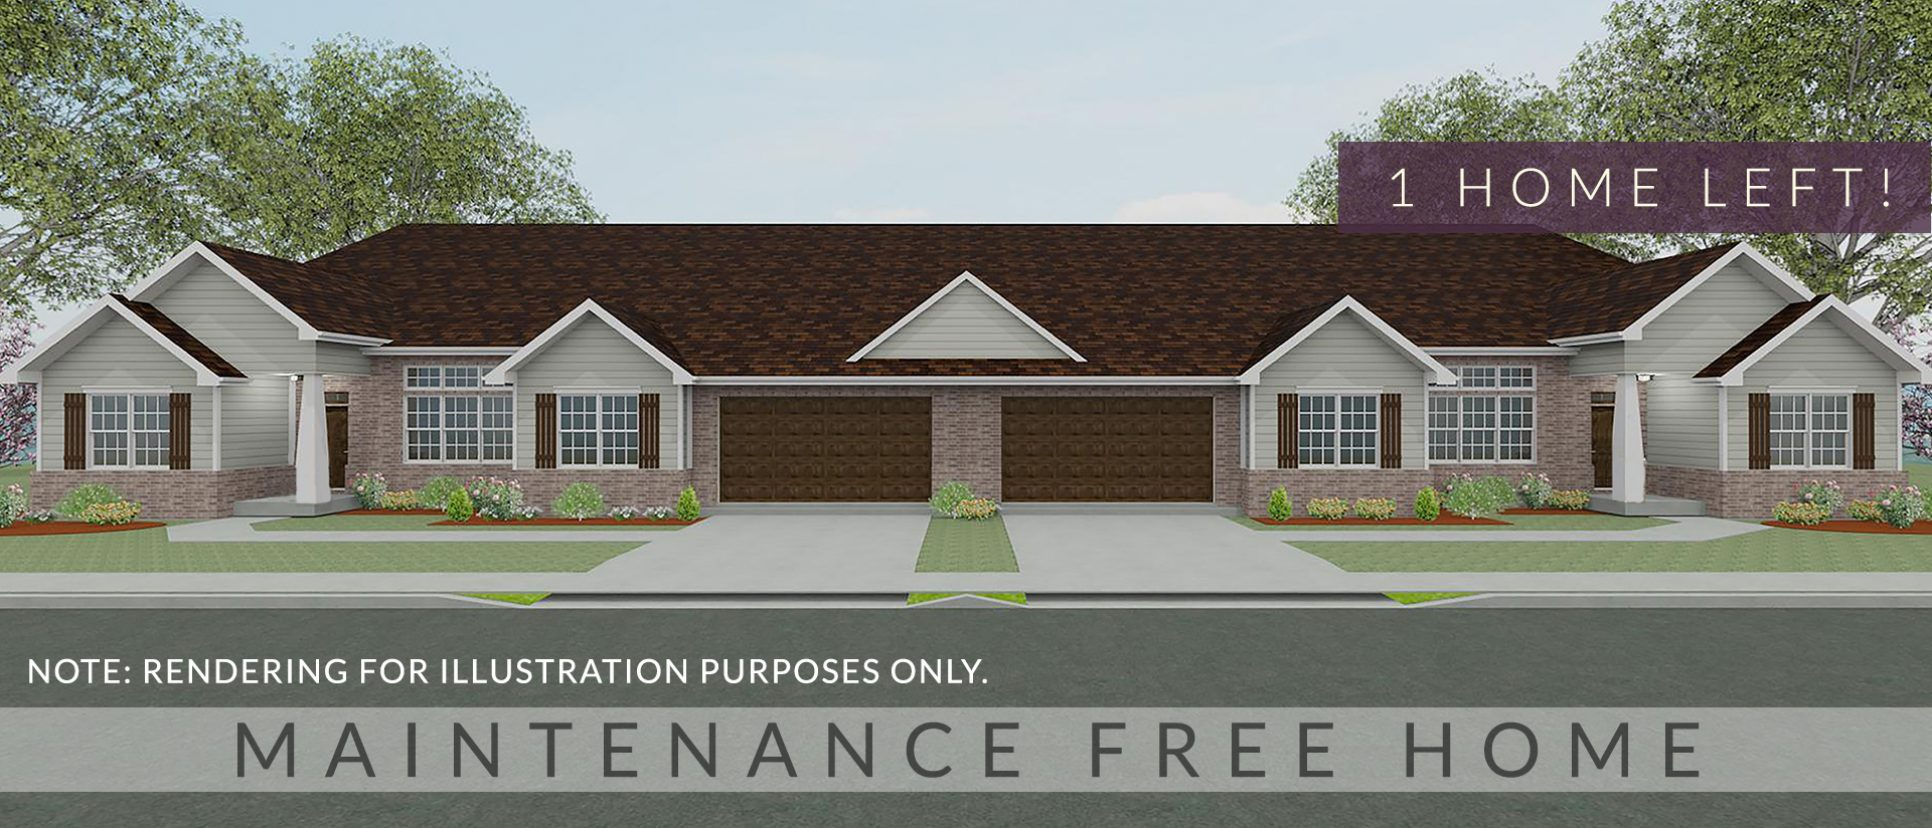 Exterior rendering of The Sheffield. A condo in Soraya Farms, custom built by Design Homes and Development.